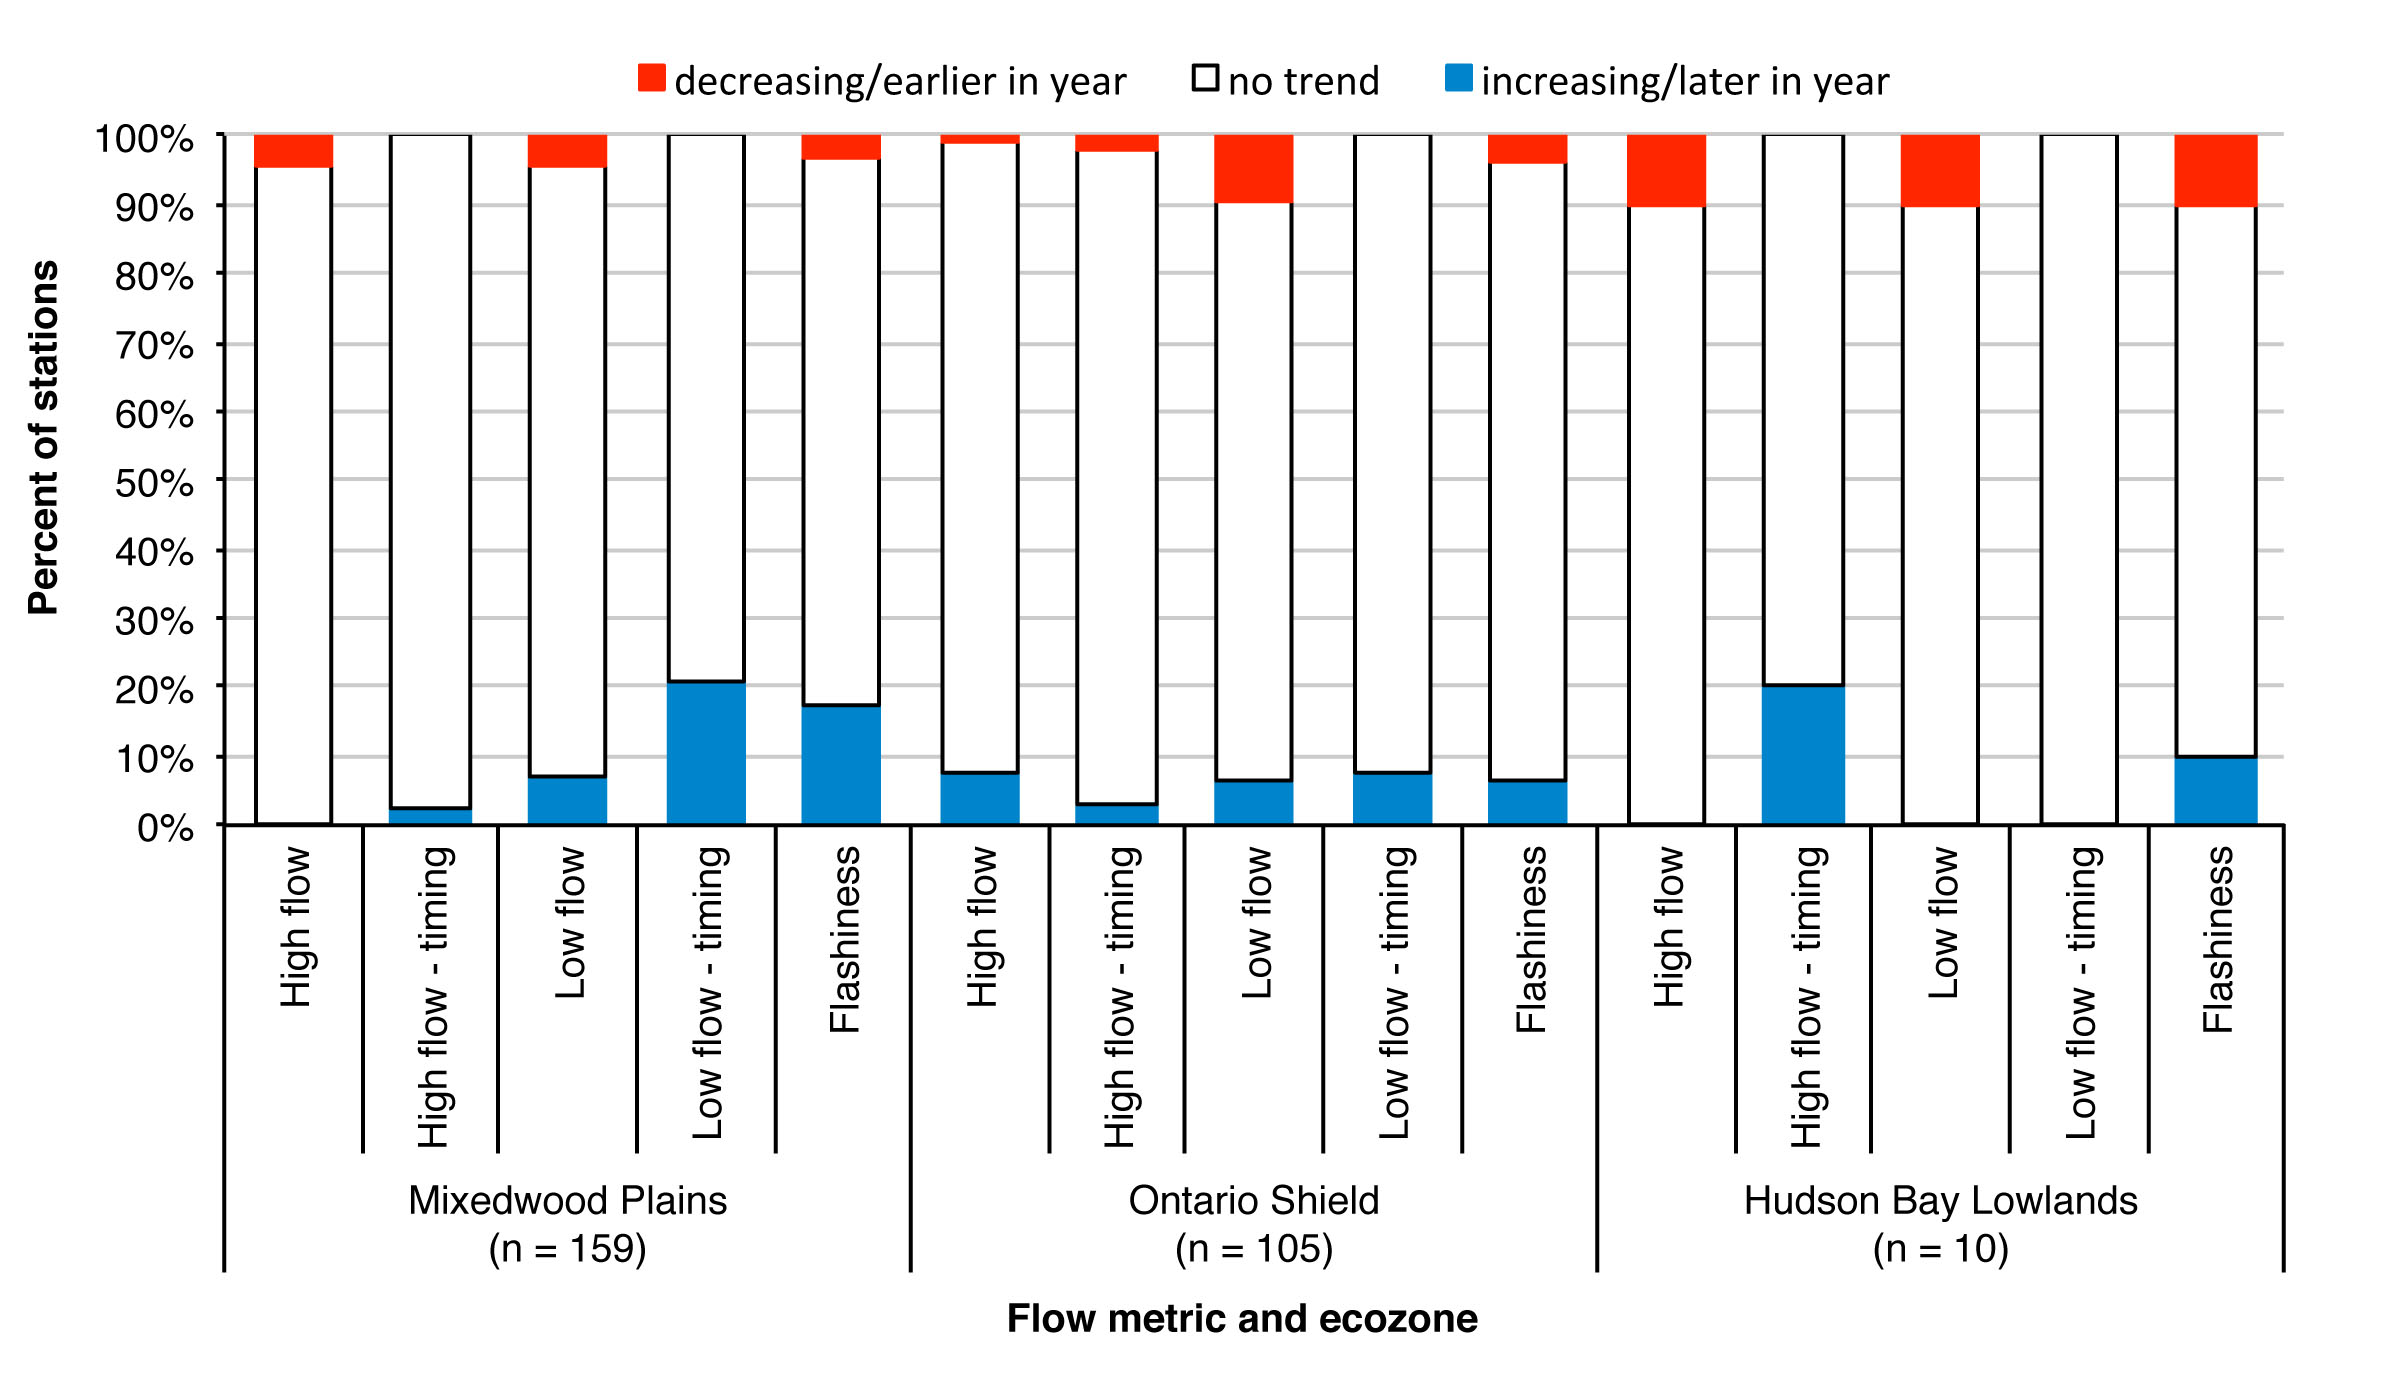 Figure 2. Summary of 1981-2010 trends in ecological flow metrics by ecozone.